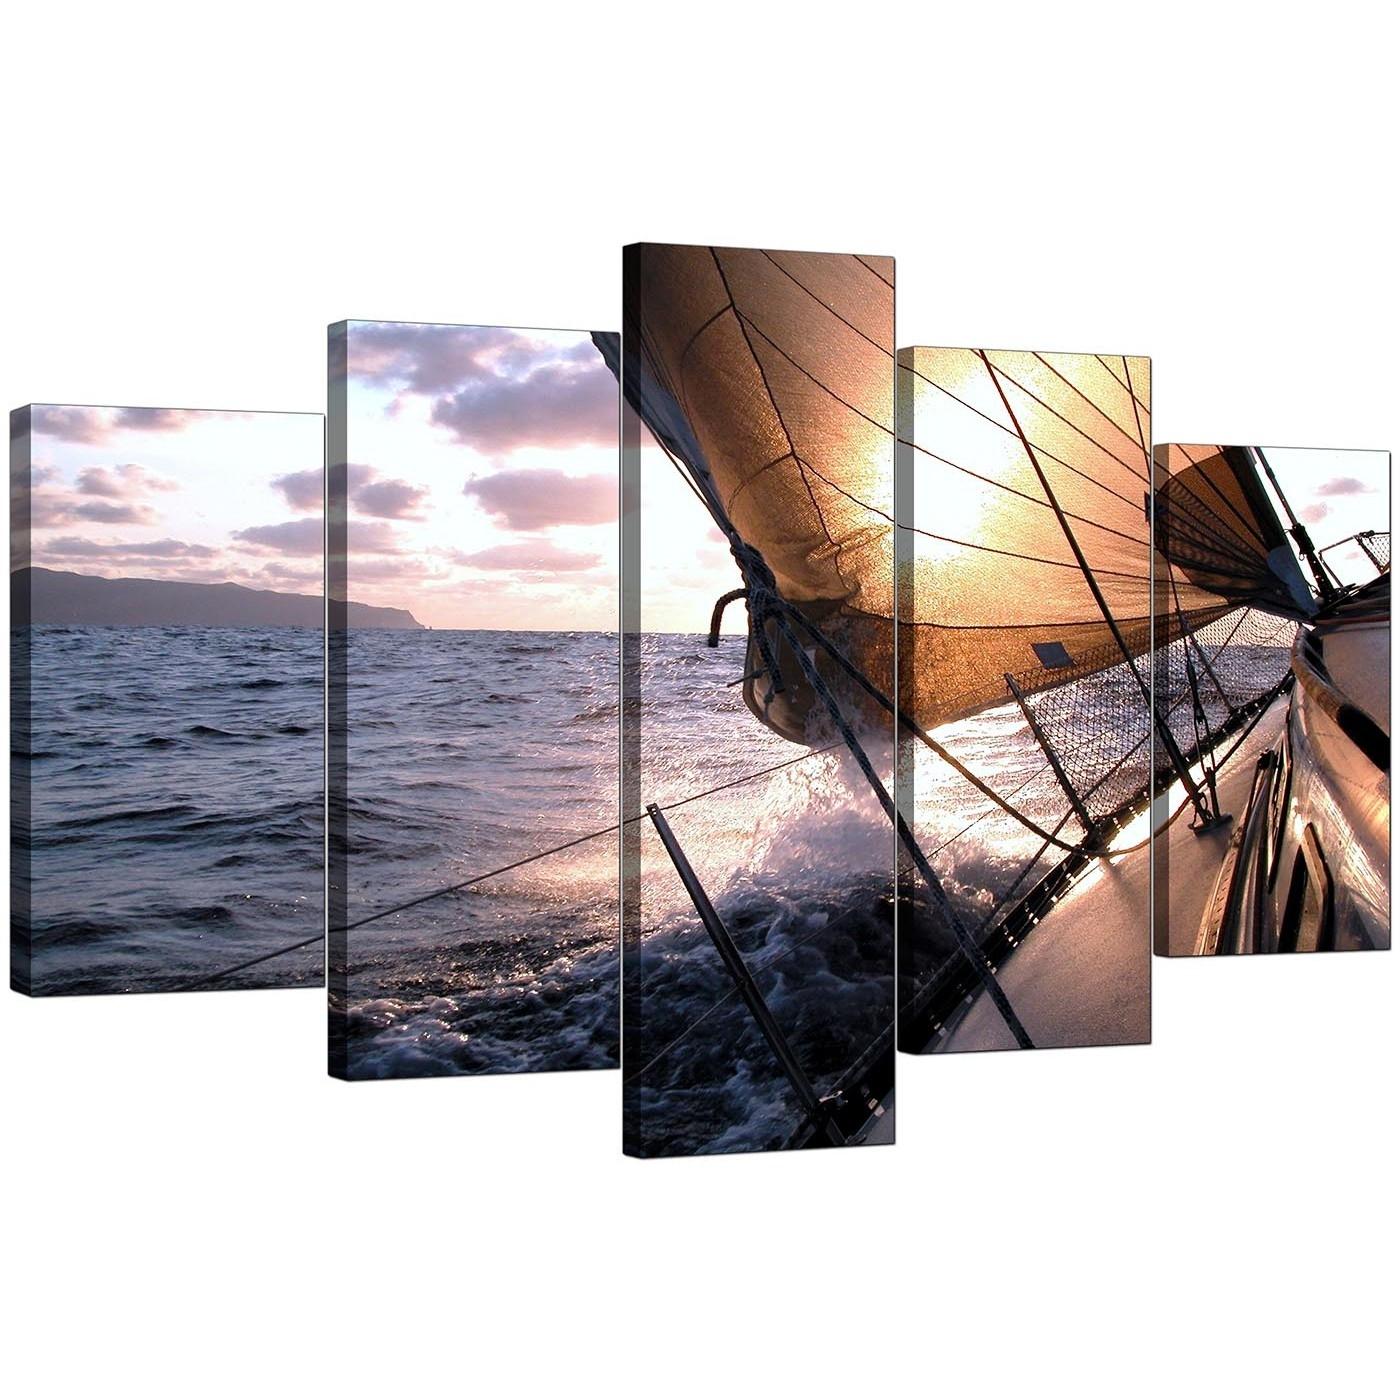 Boat Canvas Prints Uk For Your Living Room – 5 Piece For 2017 5 Piece Canvas Wall Art (View 12 of 20)